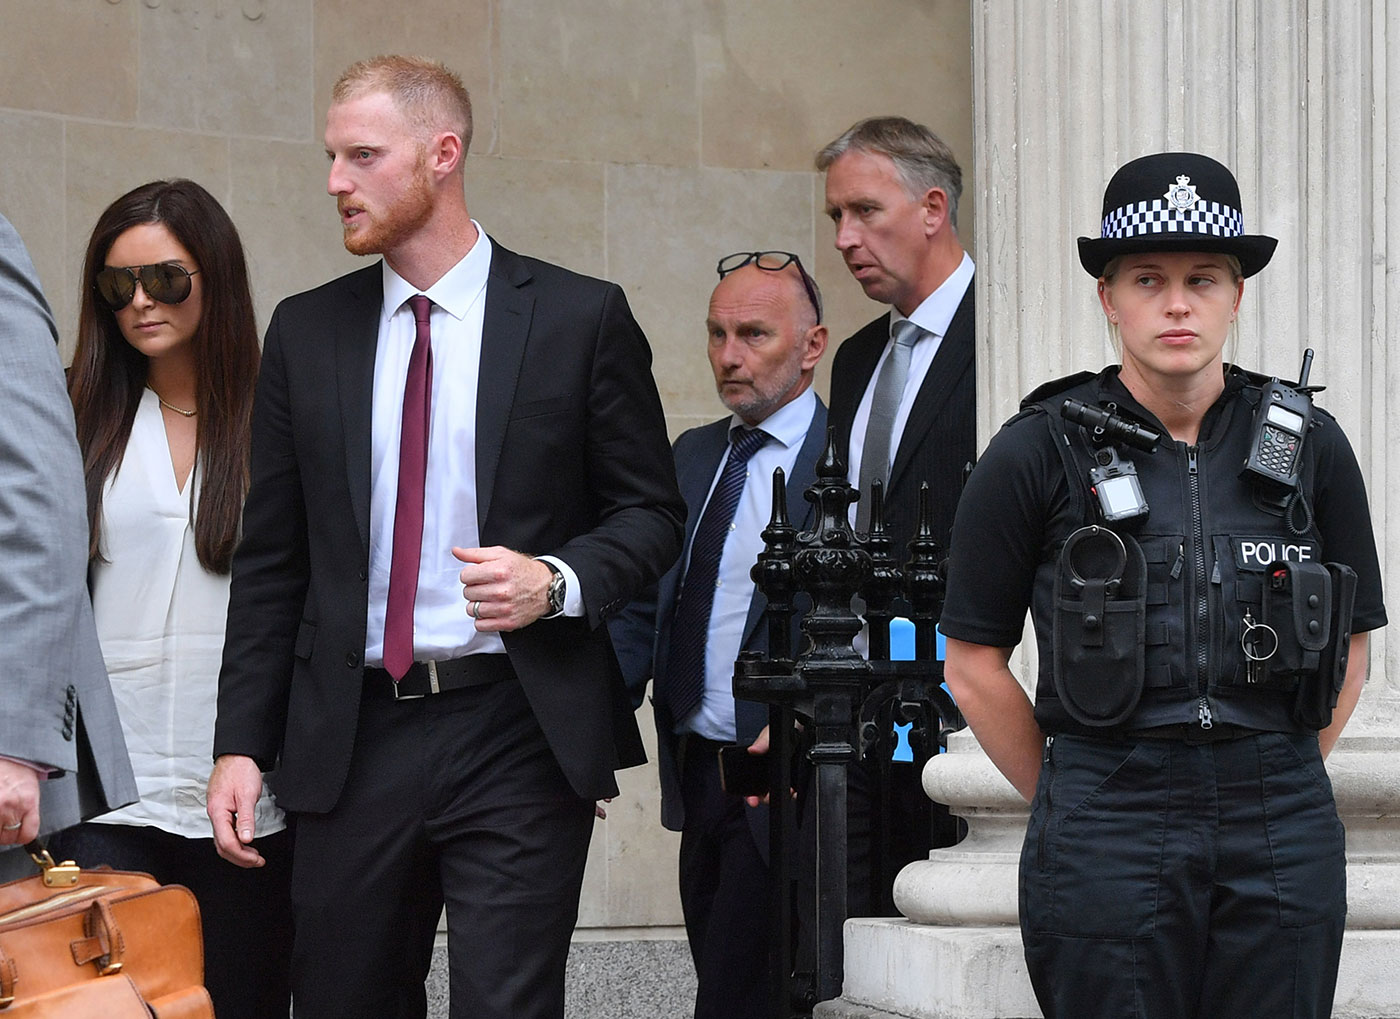 Ben Stokes rejoins England squad after acquittal